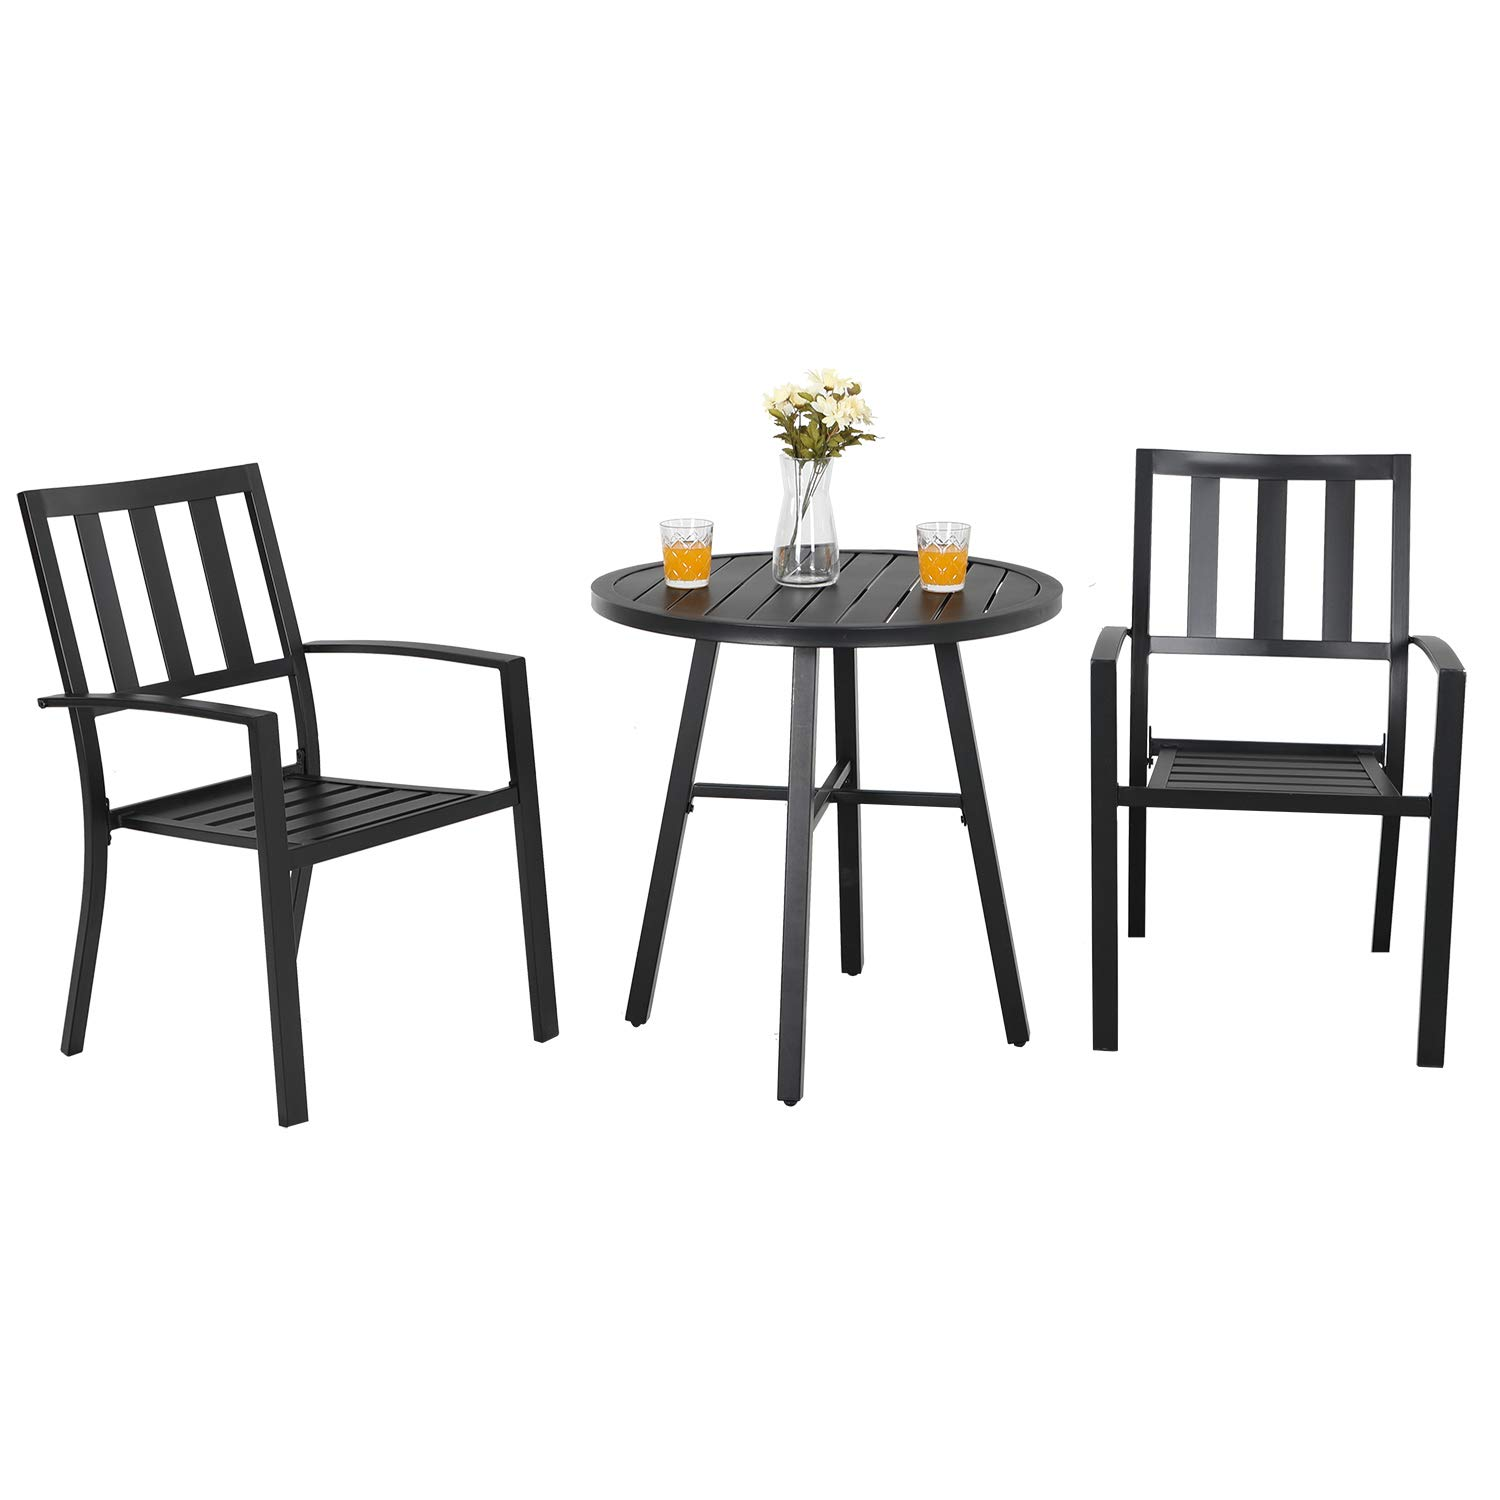 PHIVILLA Metal Patio Bistro Set 8 Piece Outdoor Table and Chairs Set with  8-Inch Steel Top Table